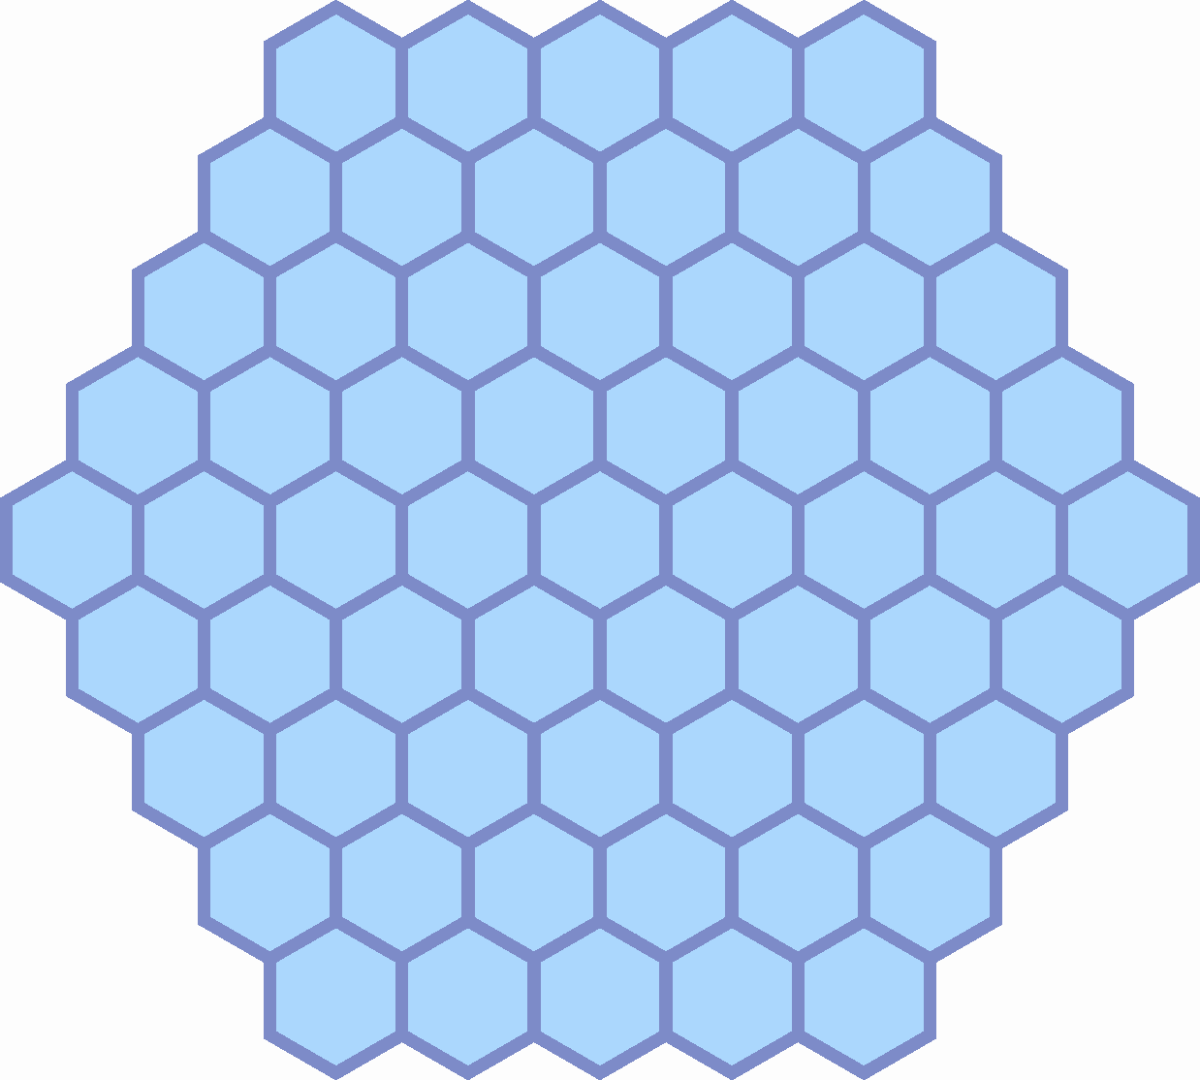 Hexagon - Tile